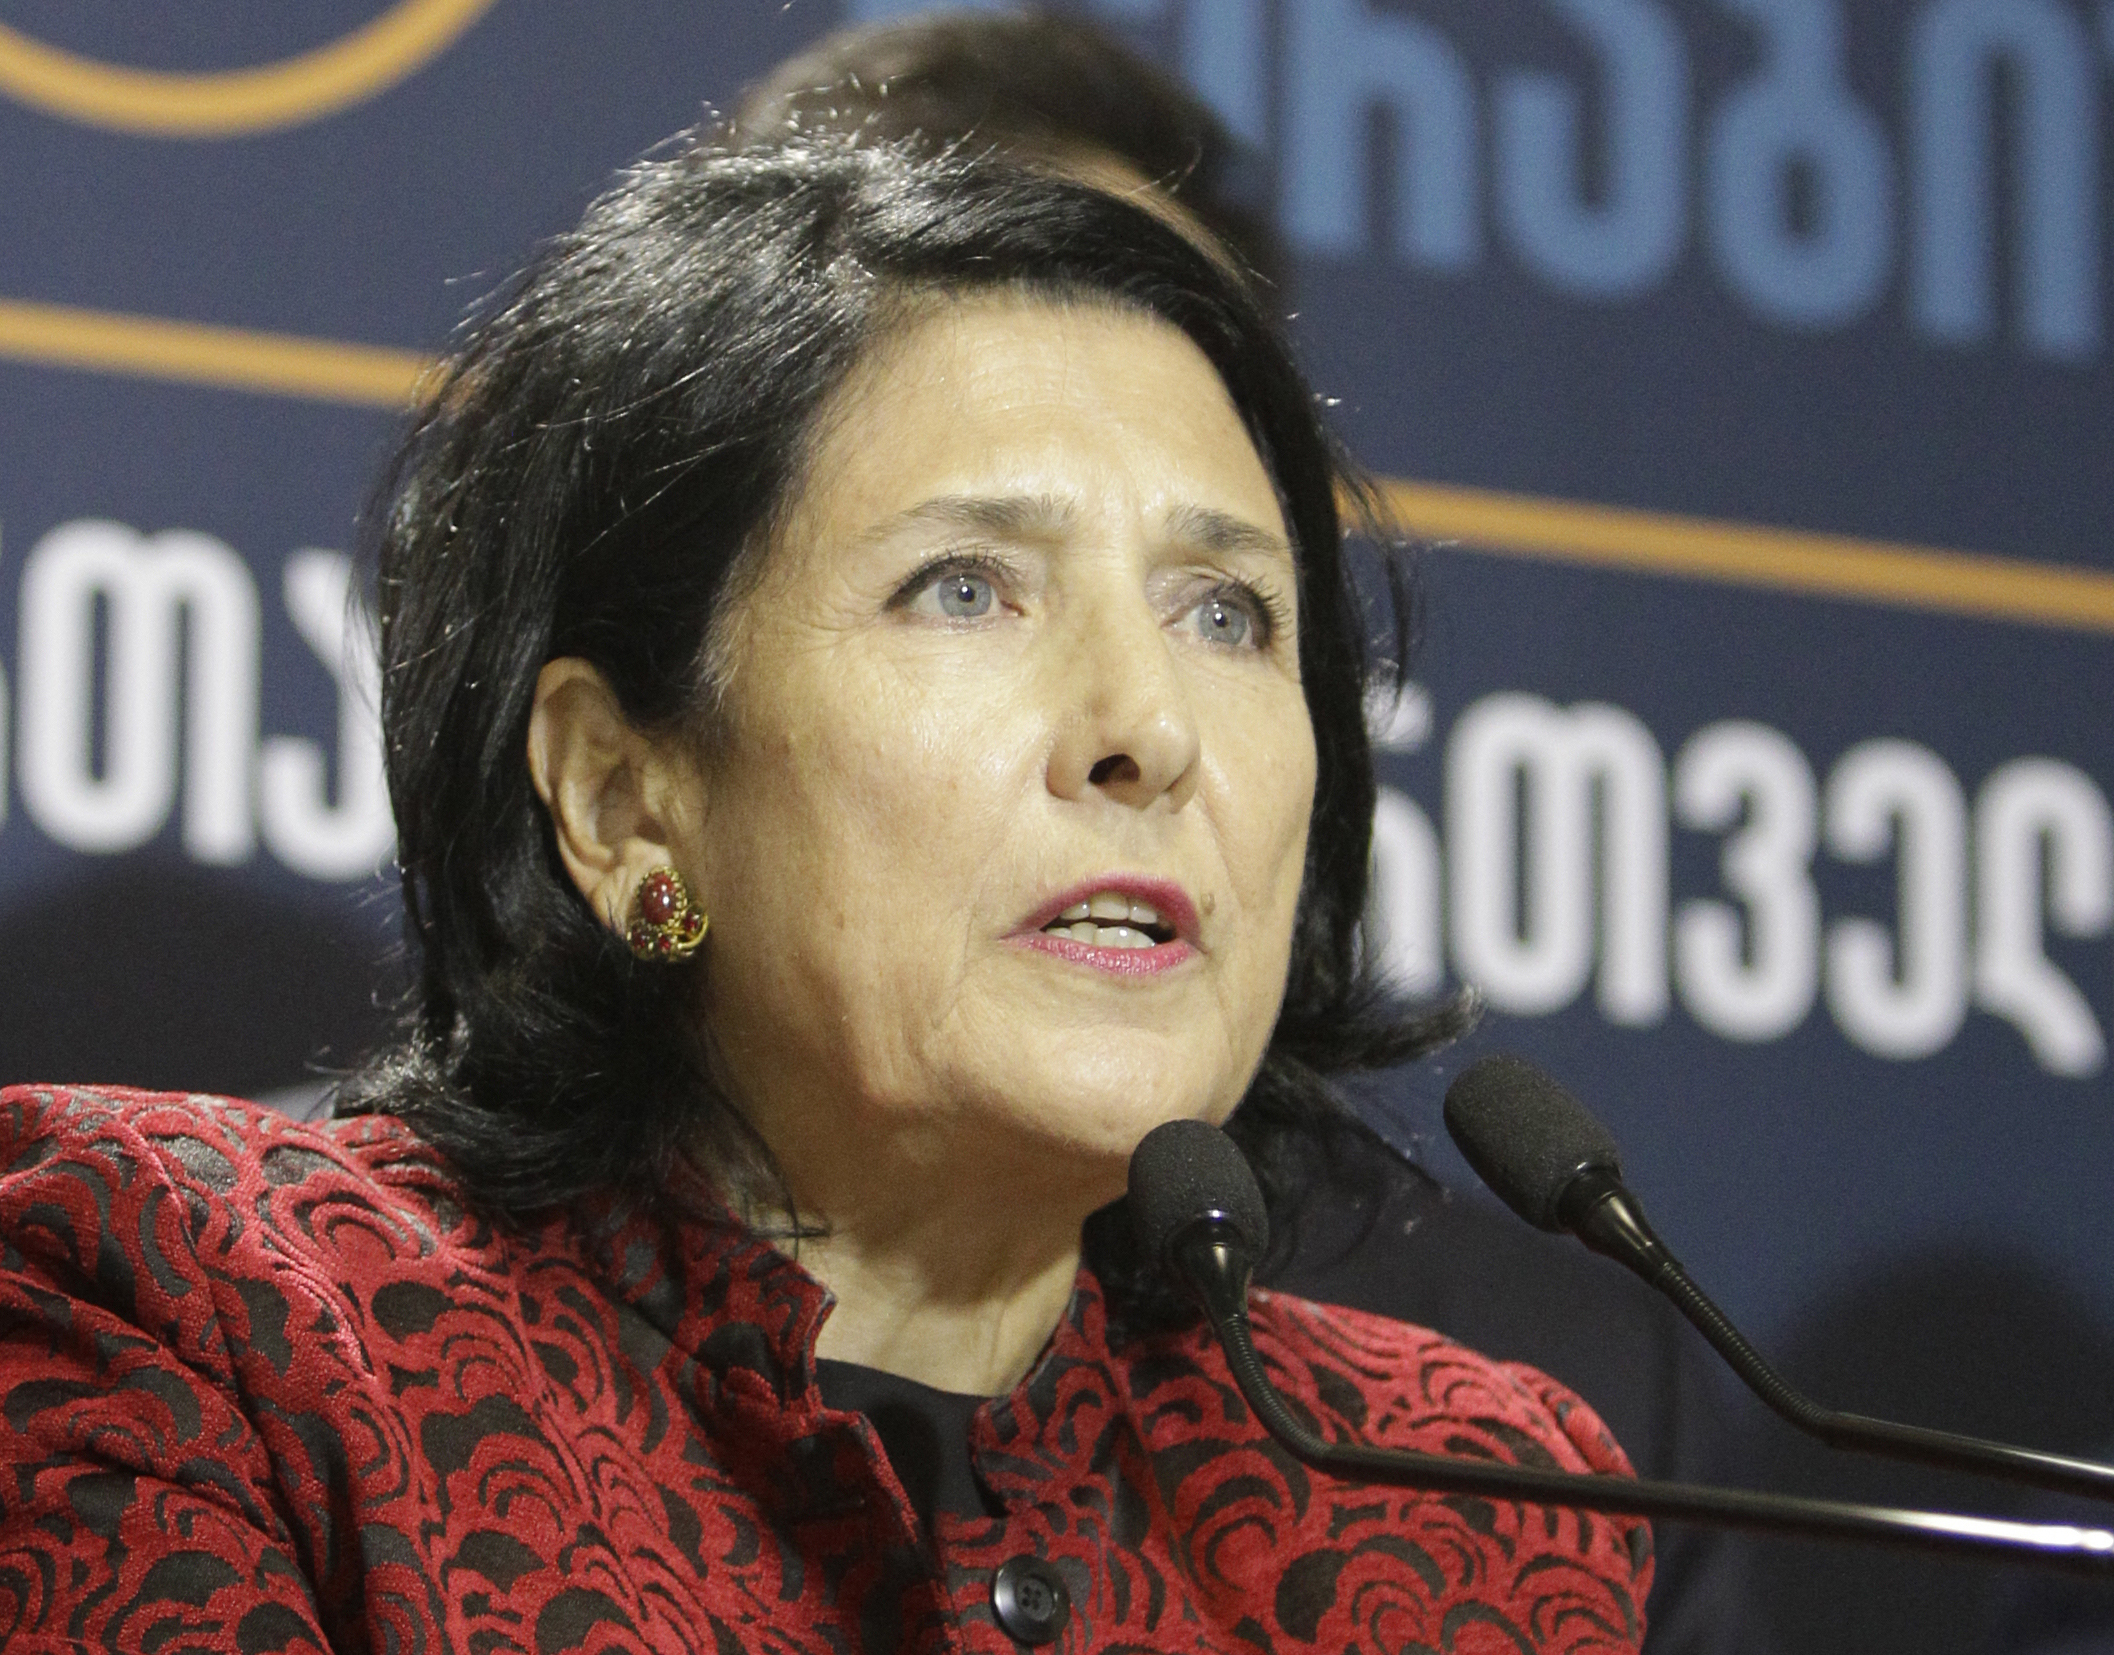 Salome Zurabishvili, former Georgian foreign minister, speaks during a news briefing at her campaign headquarters in Tbilisi, Georgia, Nov. 28, 2018.